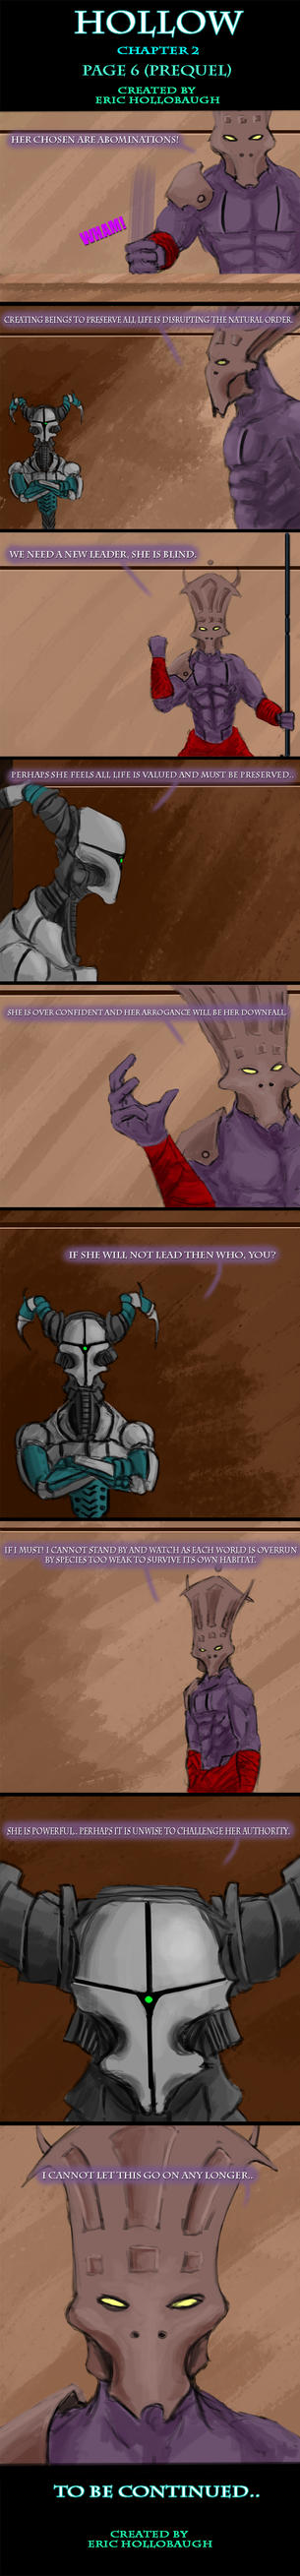 Hollow Chapter 2 -Page 6- Betrayer by EricHollobaughArt